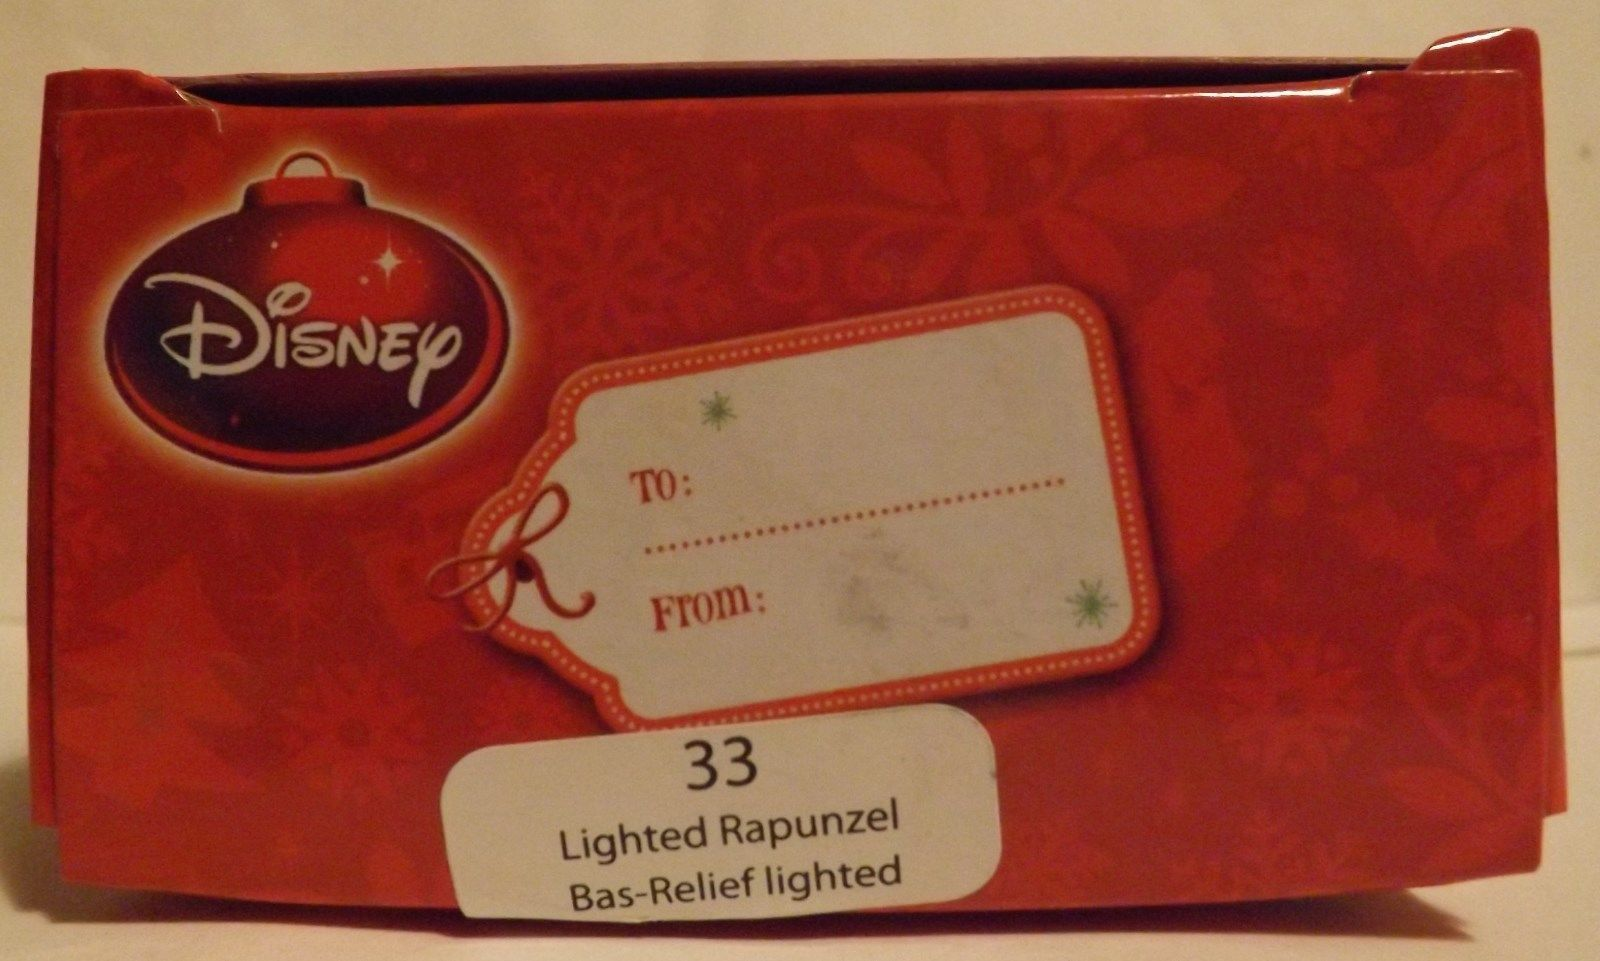 "Disney 3"" Lighted Rapunzel Bas-Relief Lighted Ornament 2013 image 2"